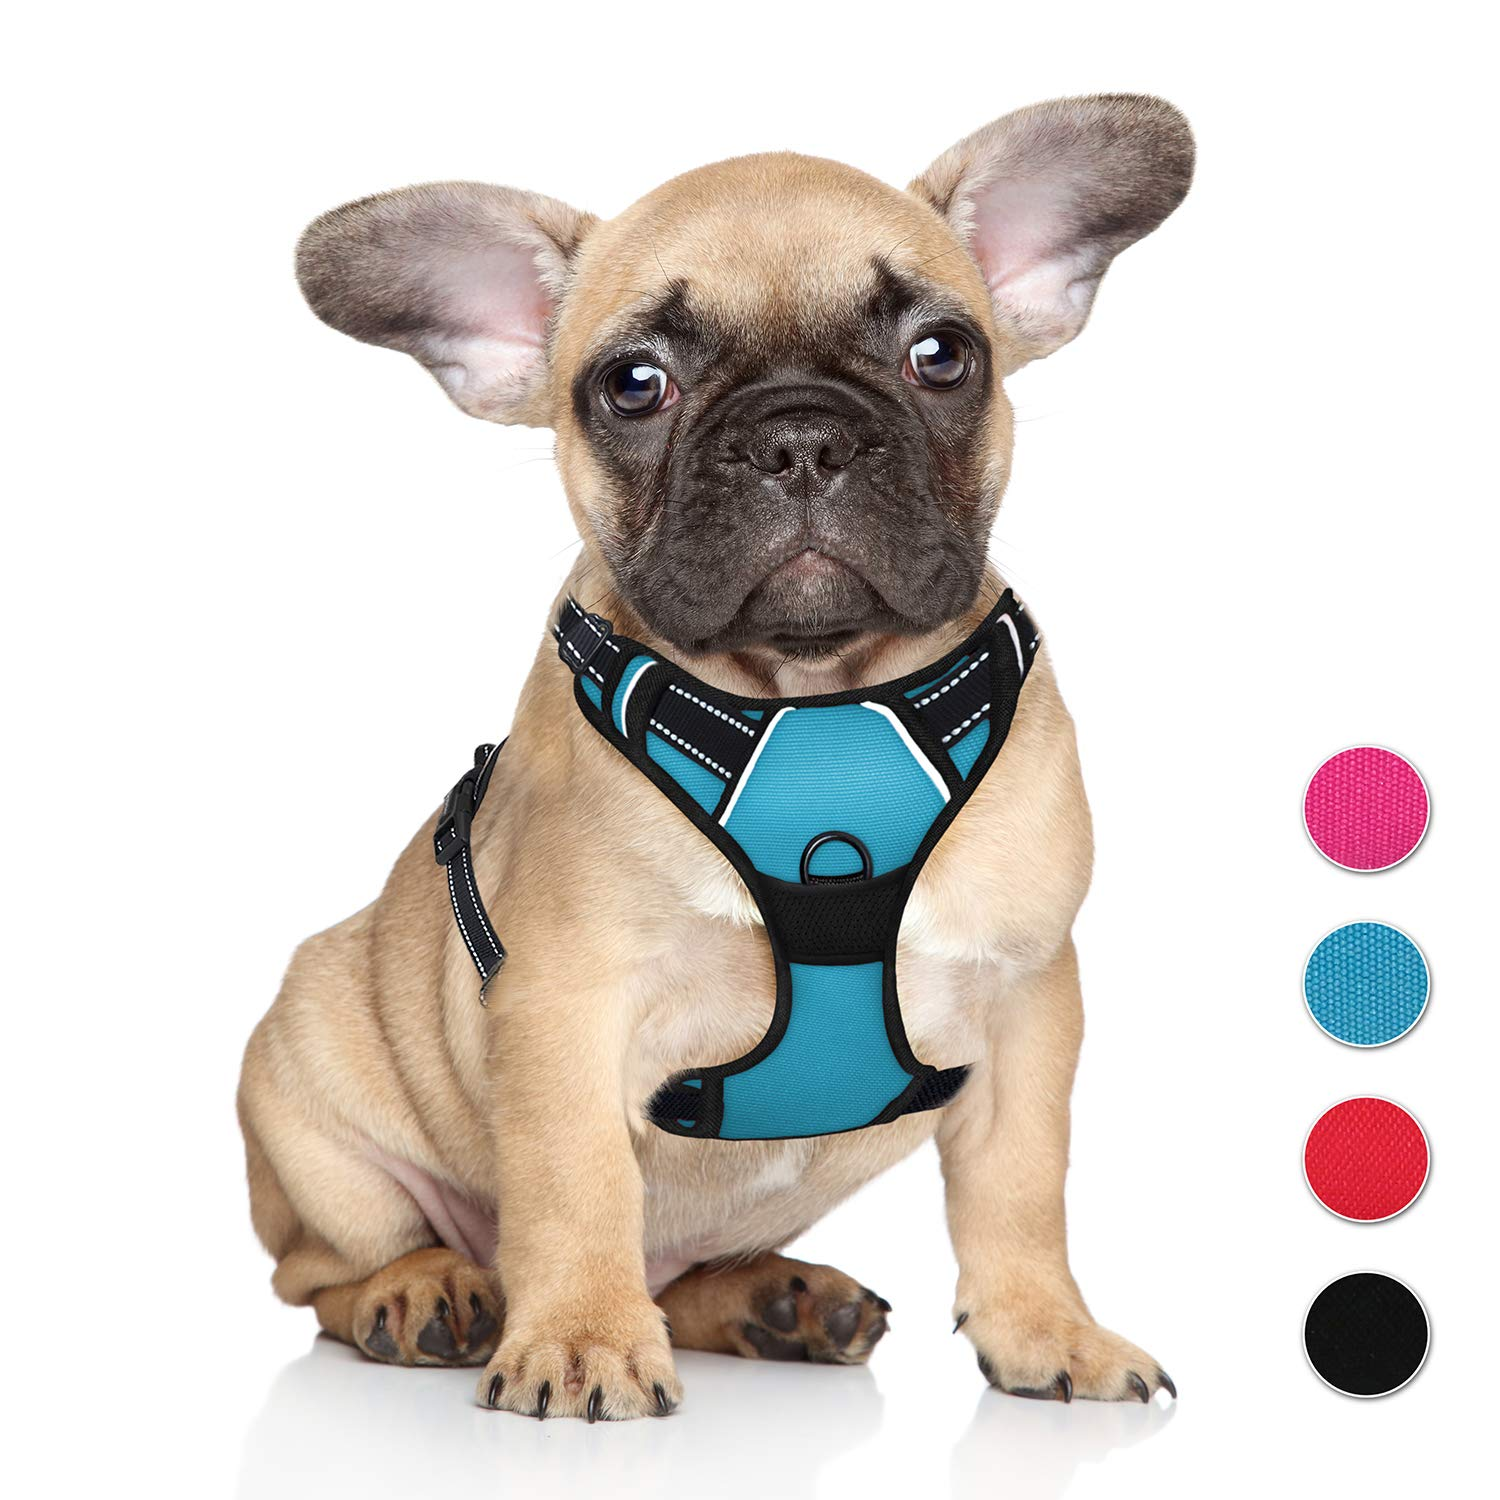 bluee S bluee S No Pull Pet Harness Dog Harness Adjustable Outdoor Pet Vest 3M Reflective Oxford Material Vest for blueE Dogs Easy Control for Small Medium Large Dogs (S)